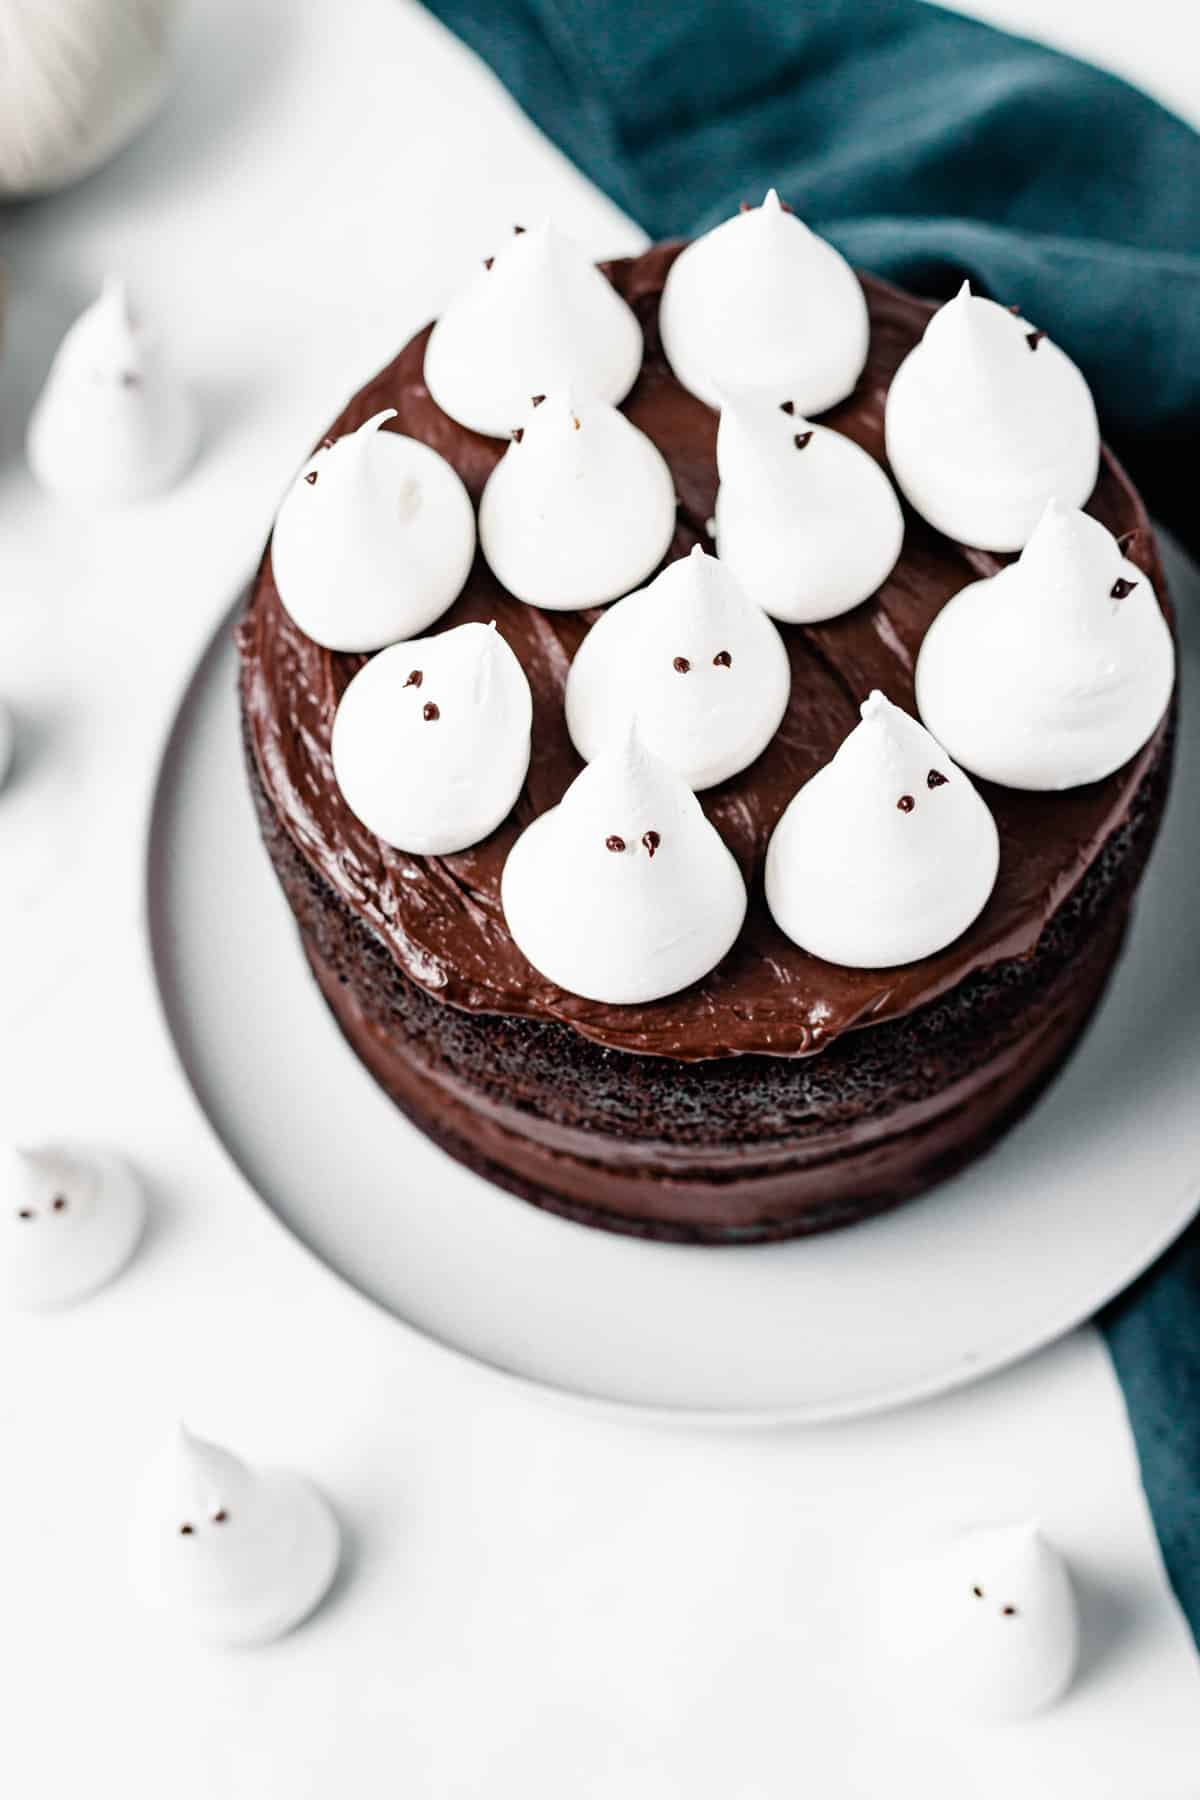 chocolate cake with meringue ghosts